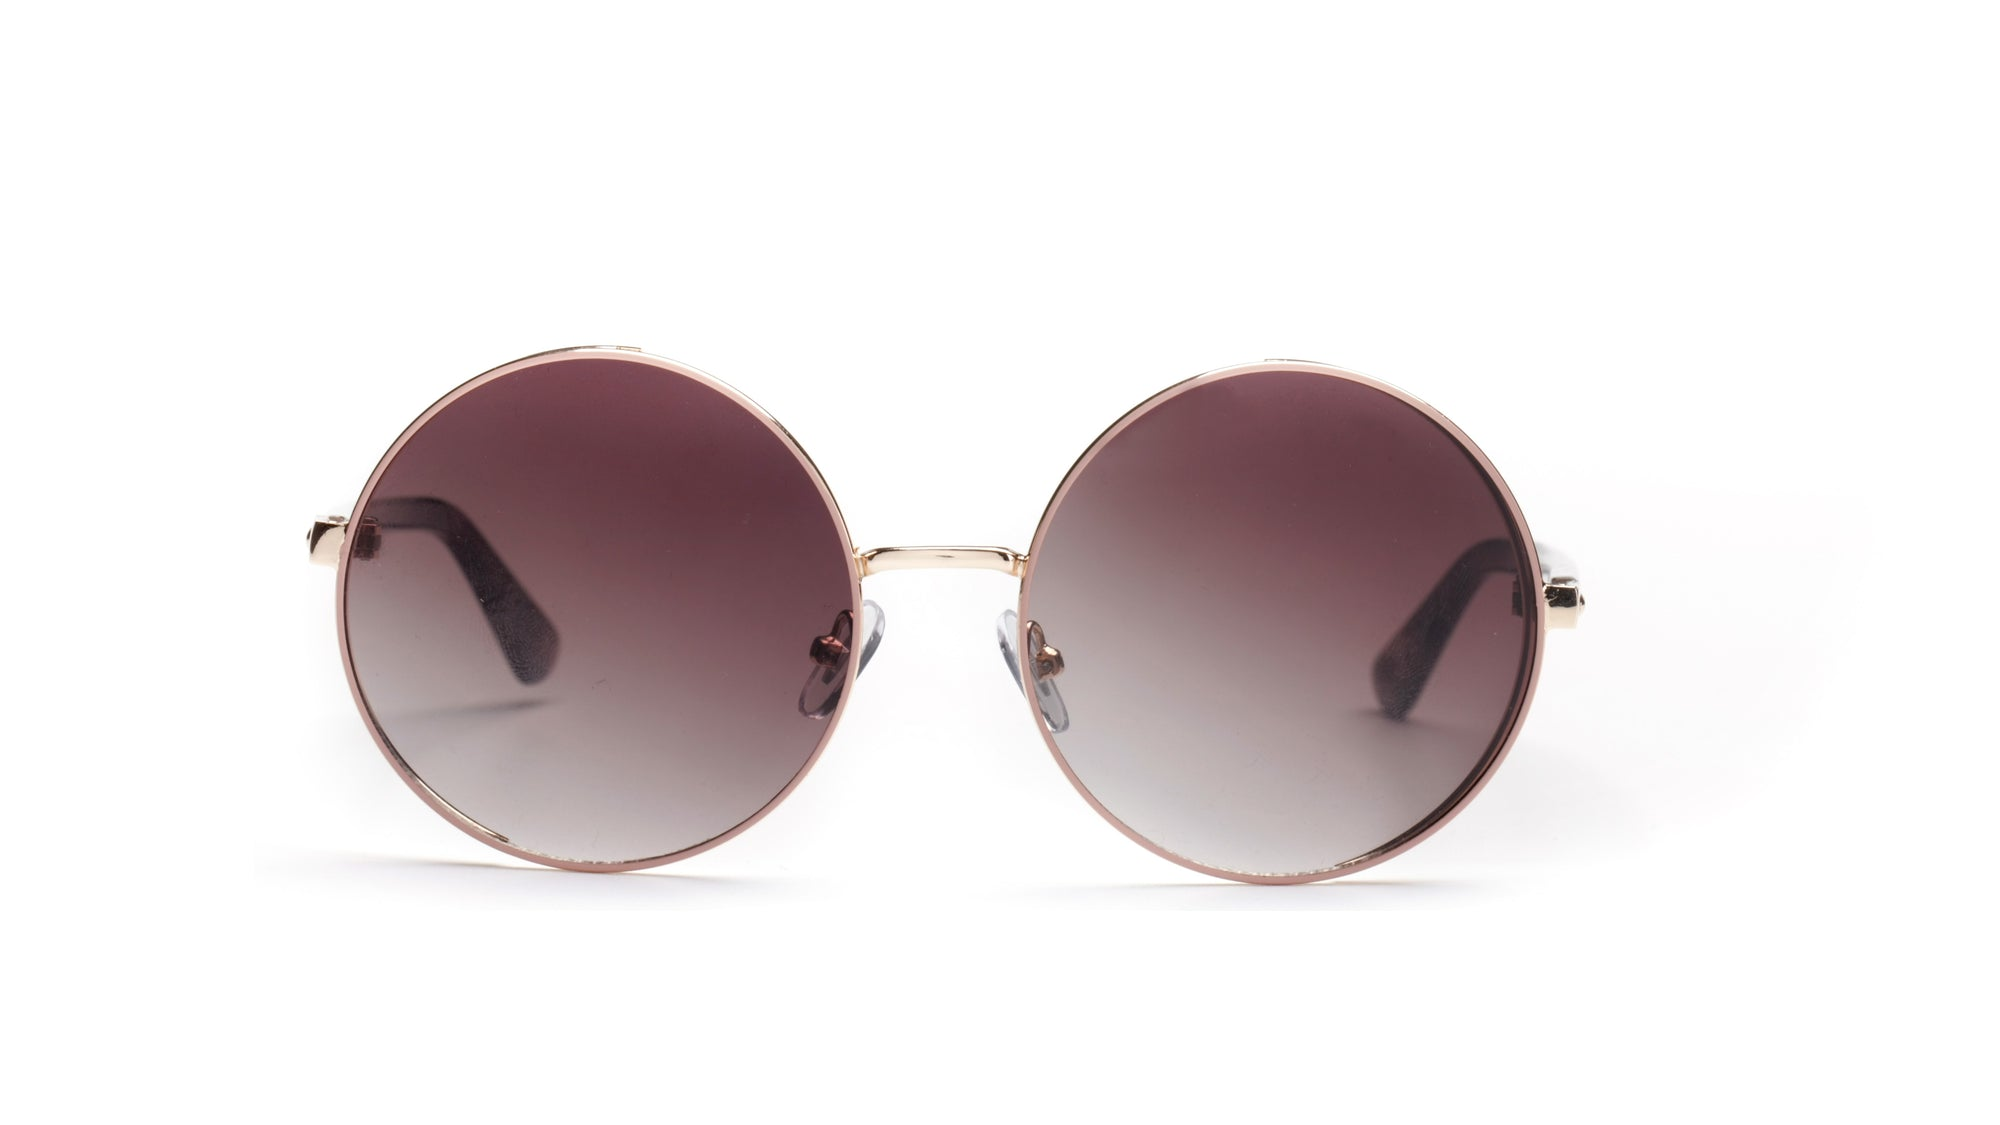 S2085 - Women Round Fashion Sunglasses - Wholesale Sunglasses and glasses